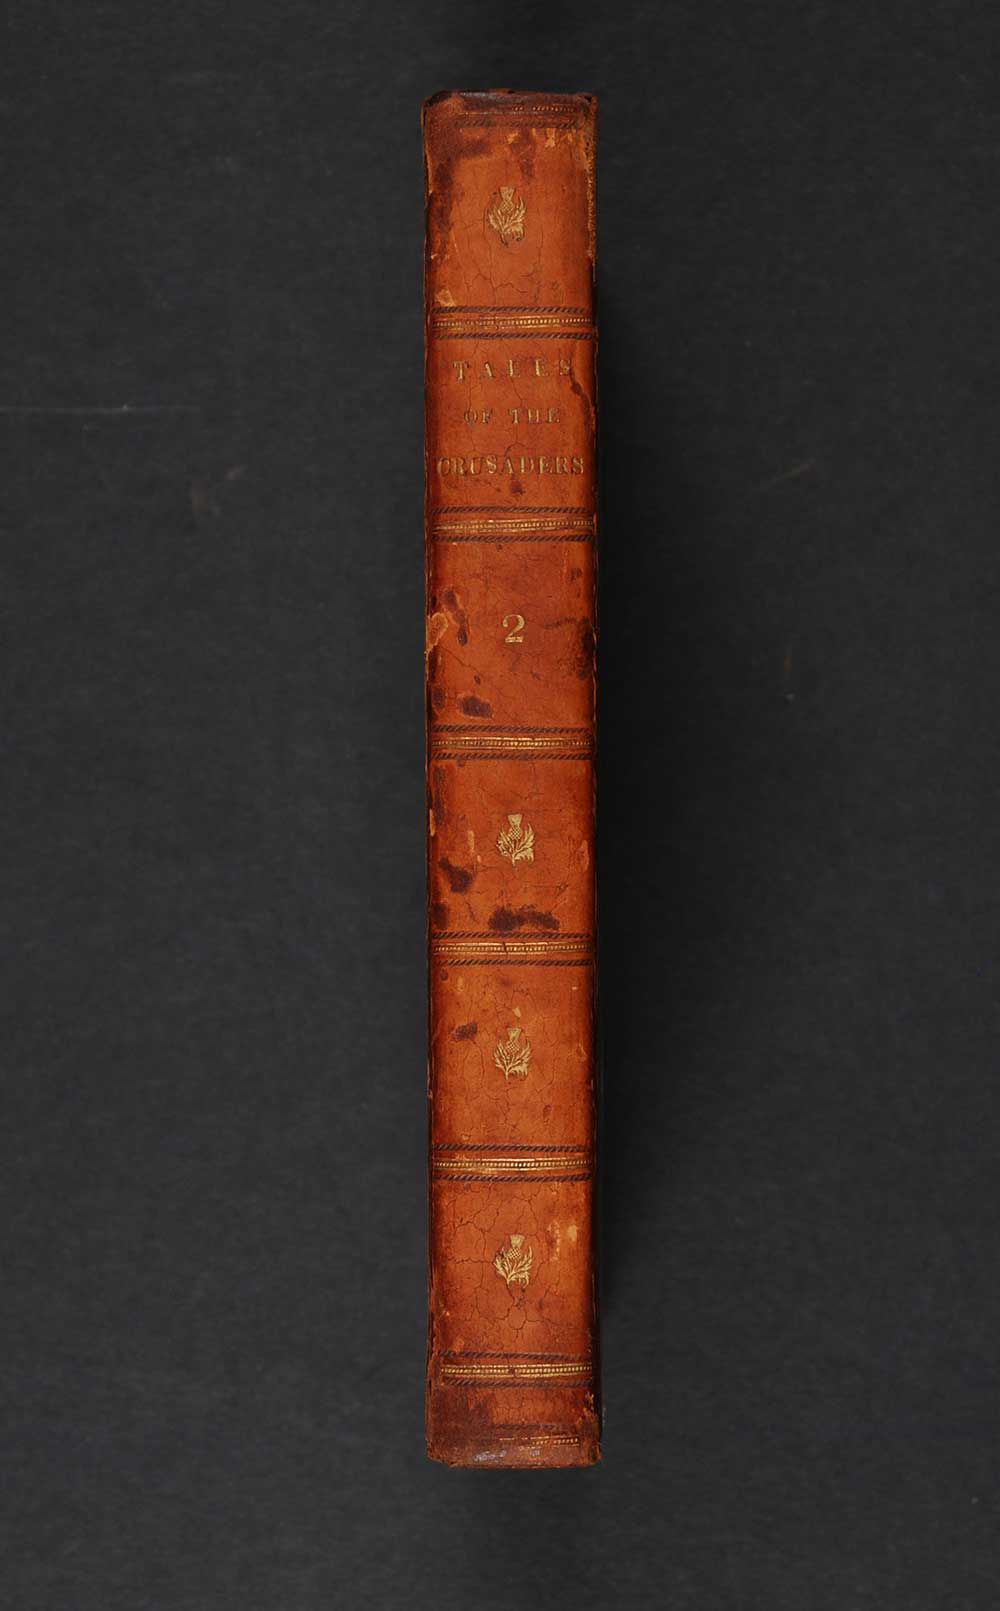 [Sir Walter Scott]. <em>Tales of the Crusaders.</em> Vol. I[-II]. <em>The betrothed.</em> [1st edition]. Edinburgh: Printed for Archibald Constable and Co., Edinburgh; and Hurst, Robinson and Co., London, 1825. Four volumes; Vol. 2 displayed.